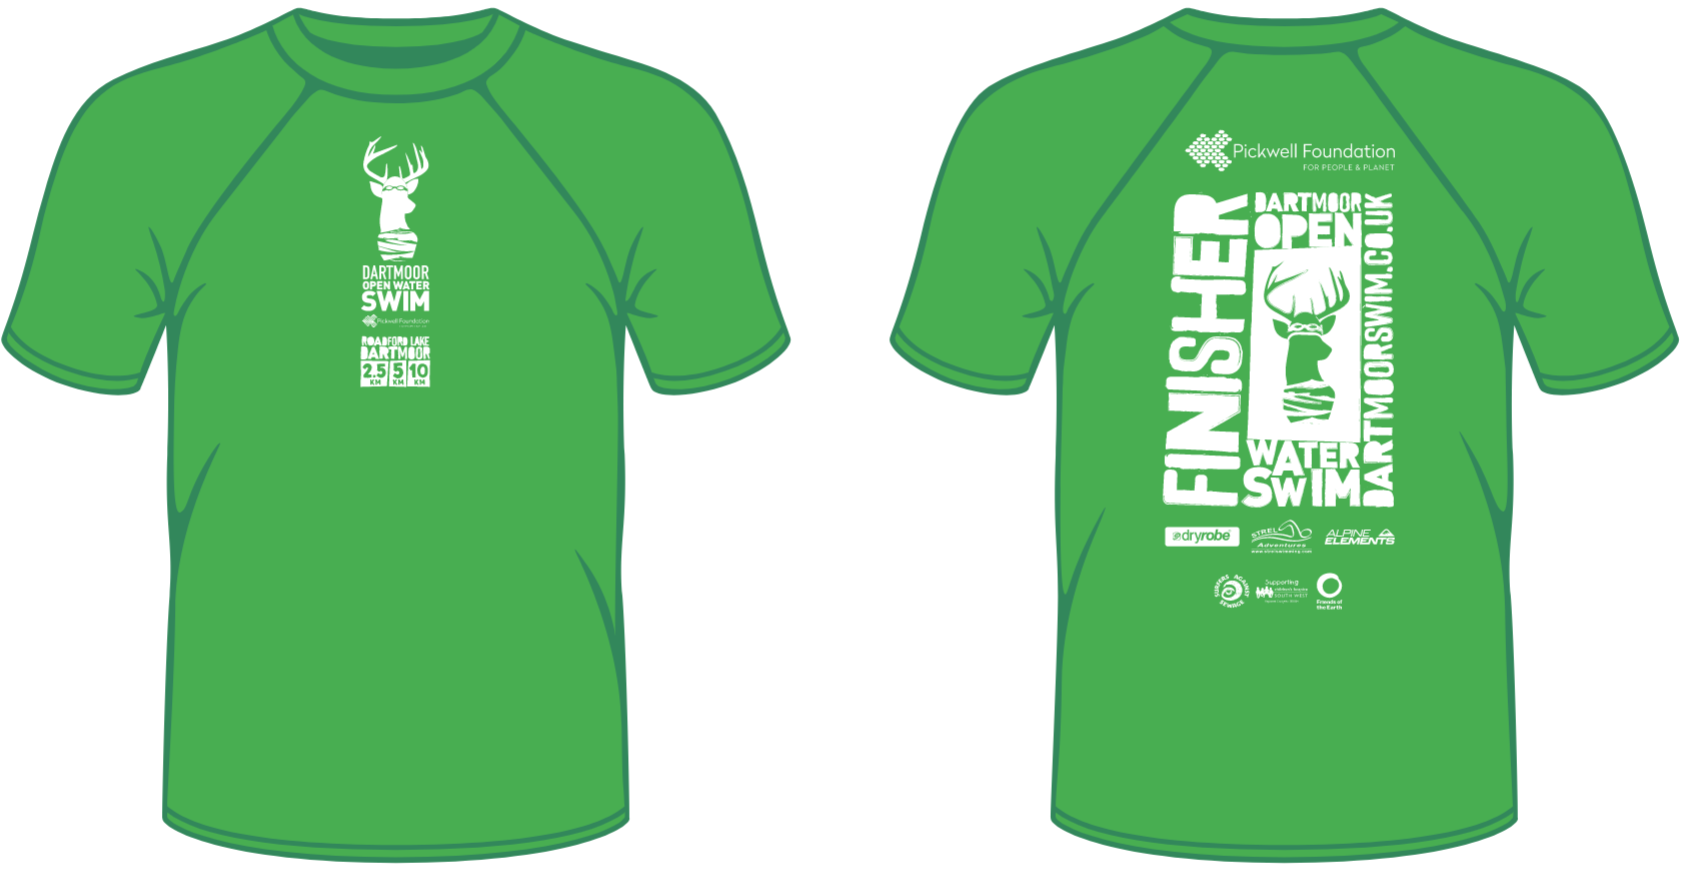 Finisher T-shirt - Dartmoor Open Water Swim